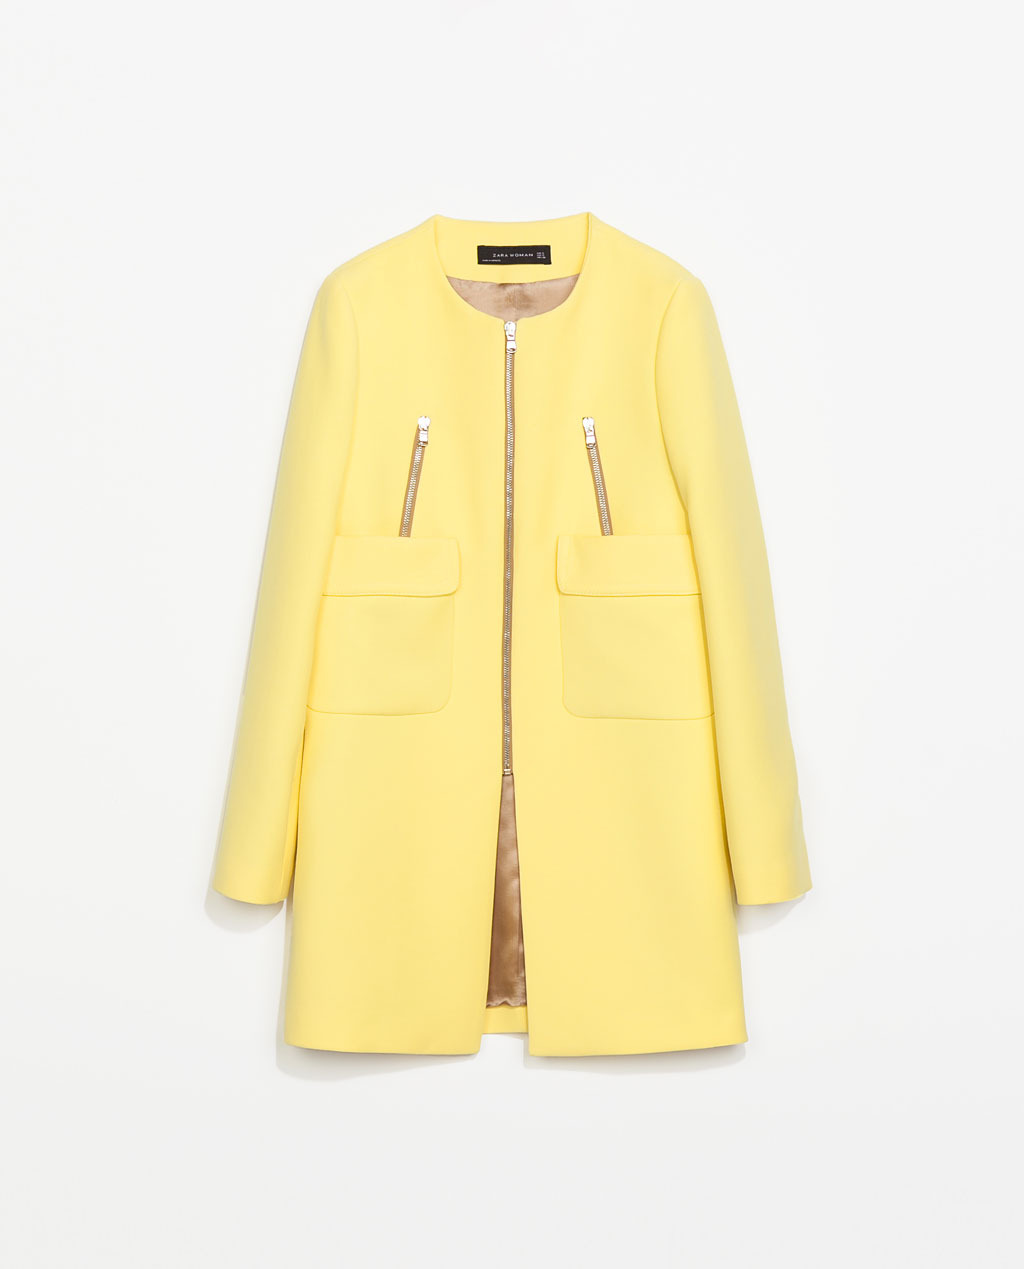 Coat With Pockets - pattern: plain; collar: round collar/collarless; style: single breasted; length: mid thigh; predominant colour: primrose yellow; occasions: casual, evening, work, creative work; fit: straight cut (boxy); fibres: polyester/polyamide - stretch; sleeve length: long sleeve; sleeve style: standard; collar break: high; pattern type: fabric; texture group: woven bulky/heavy; trends: sorbet shades; season: s/s 2014